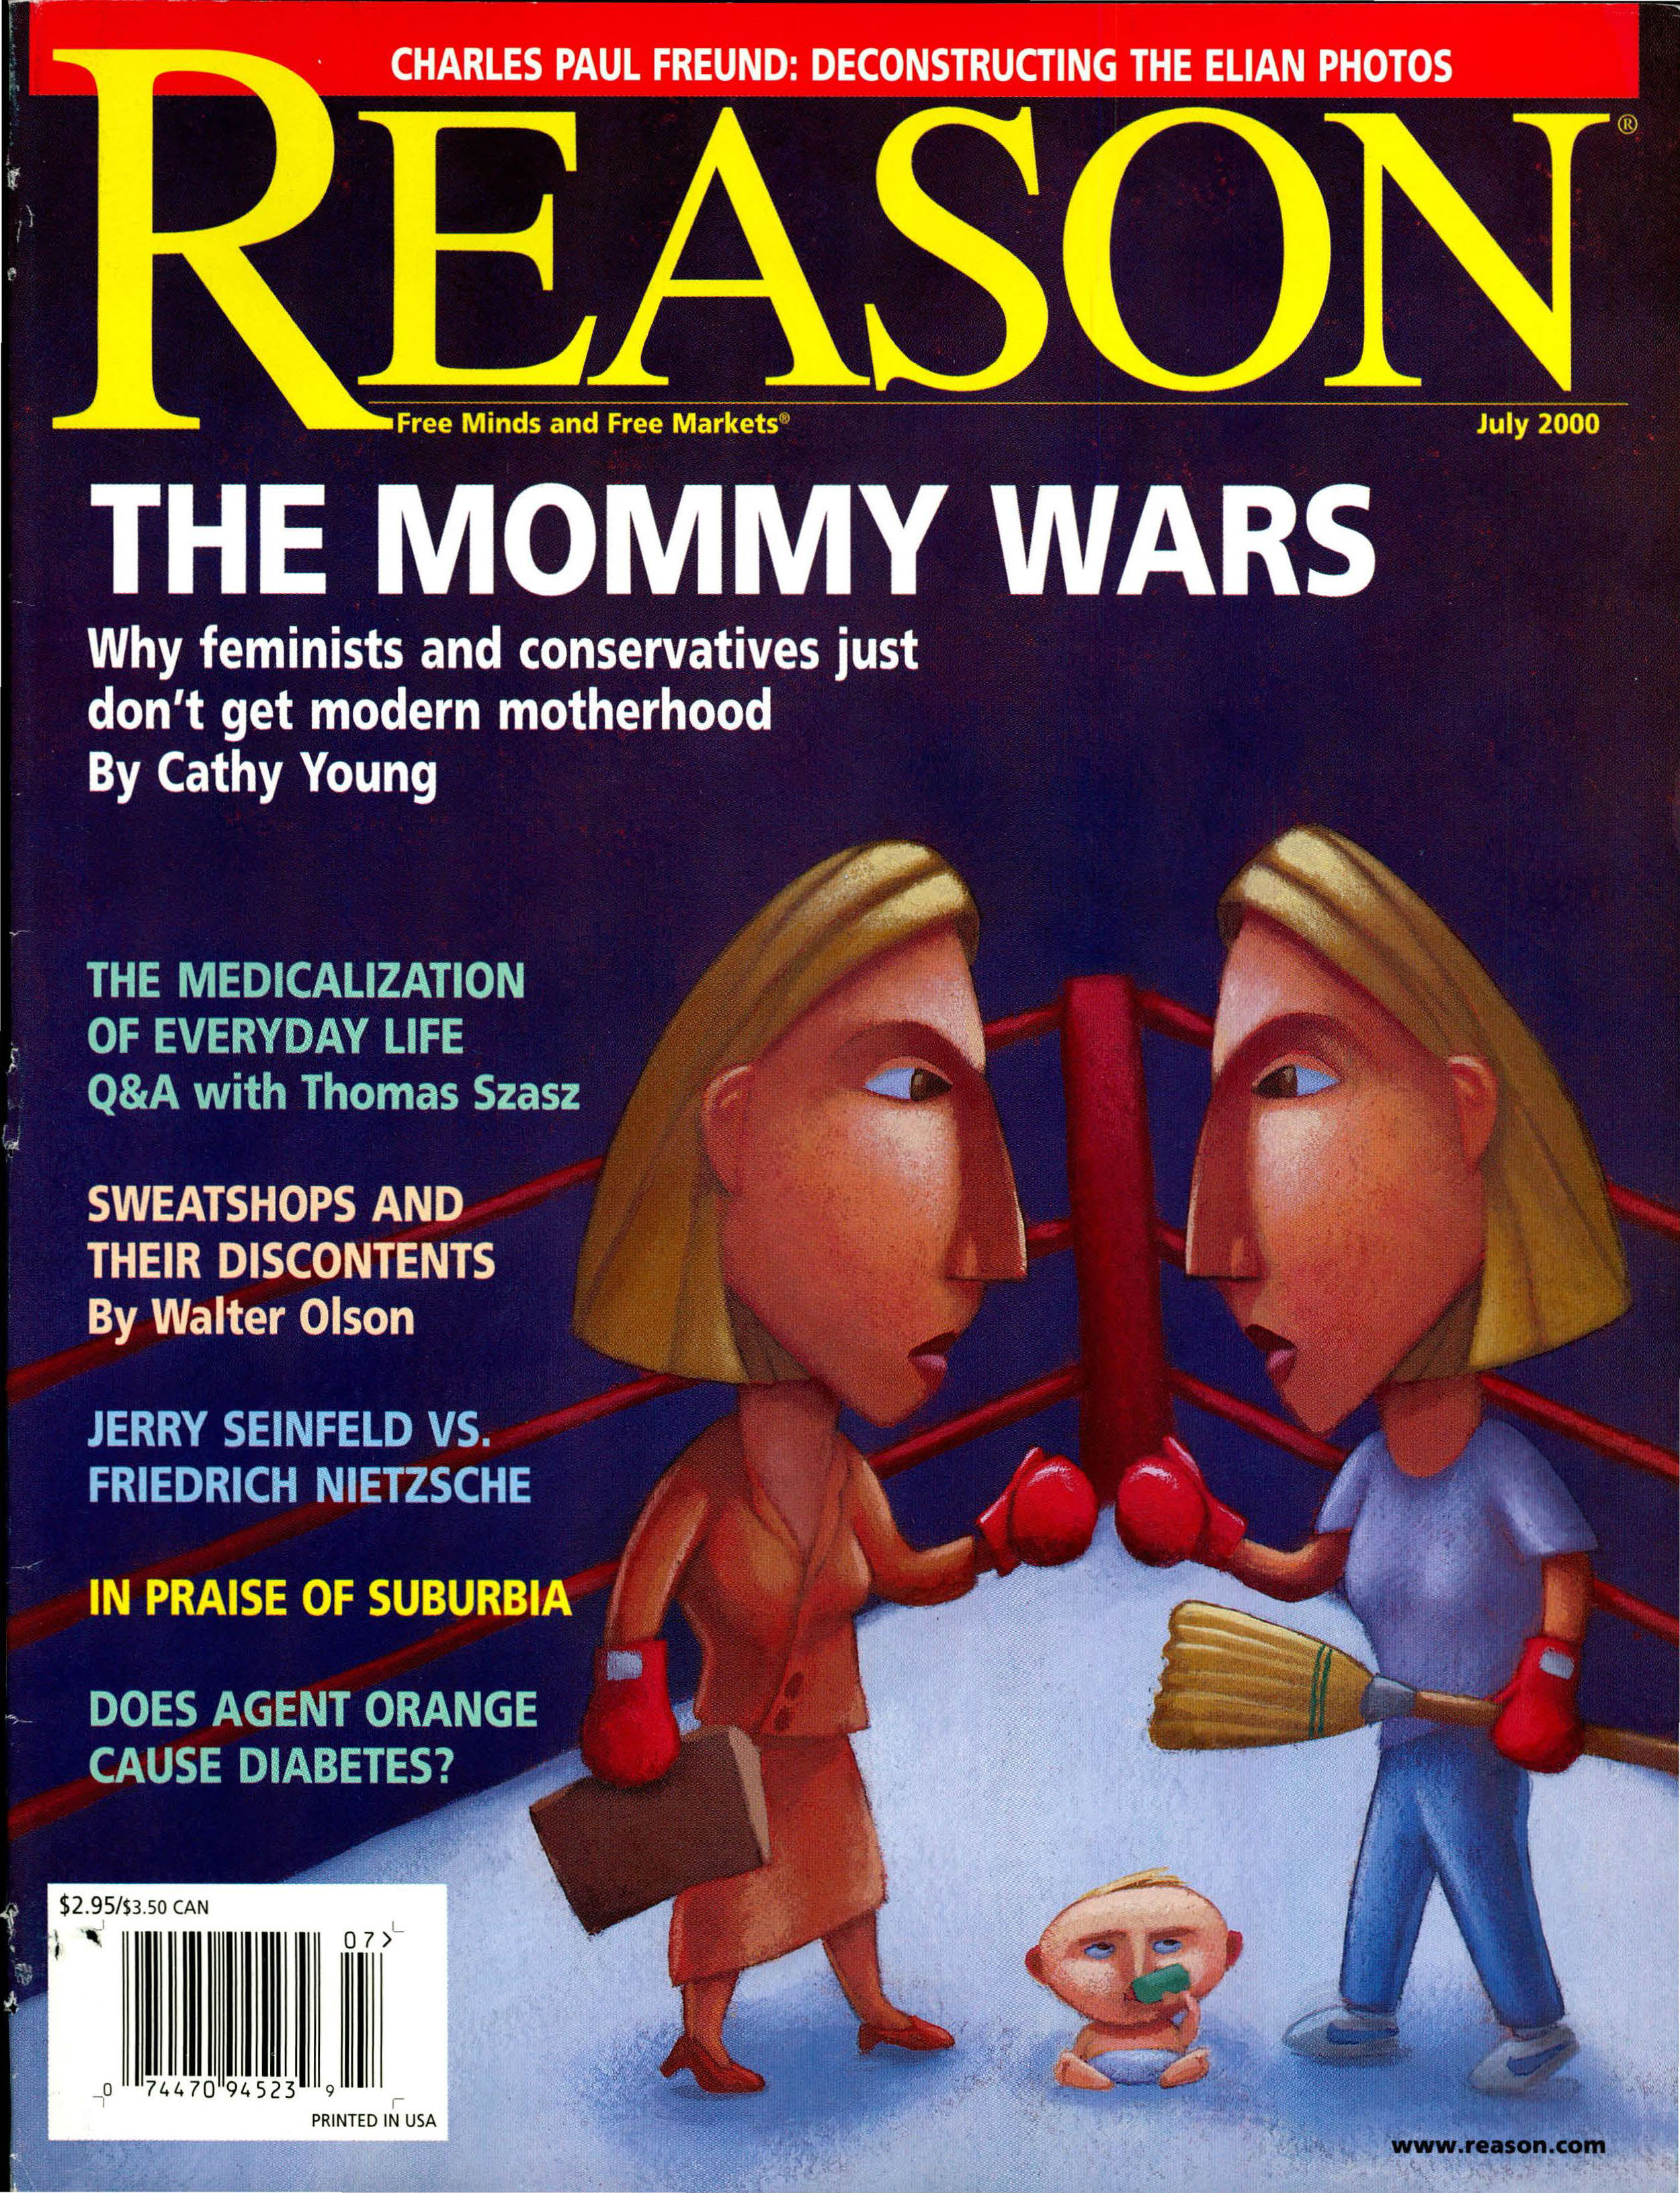 Reason Magazine, July 2000 cover image